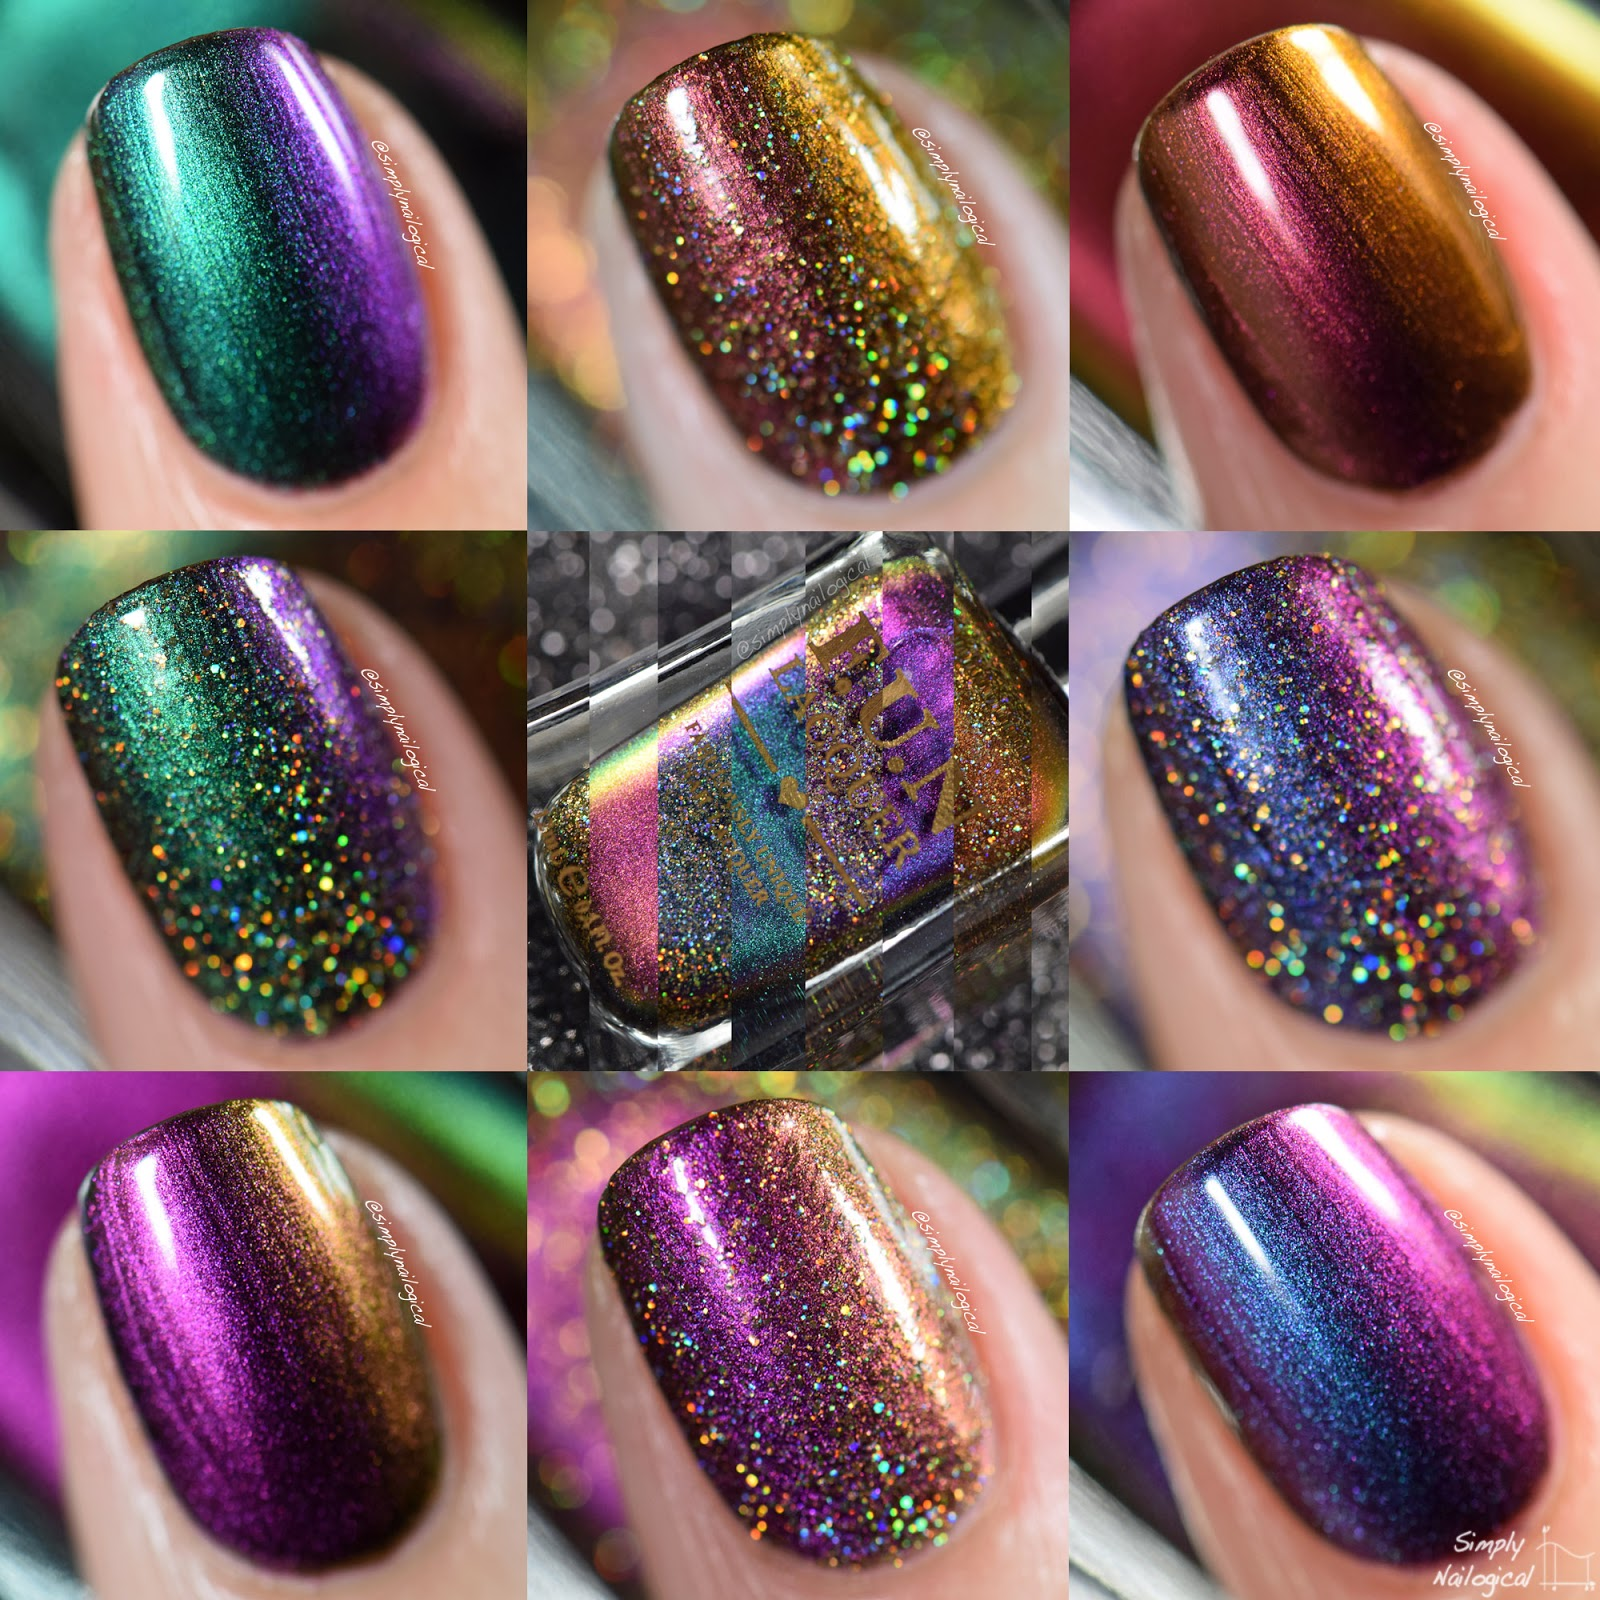 Simply Nailogical: Swatches